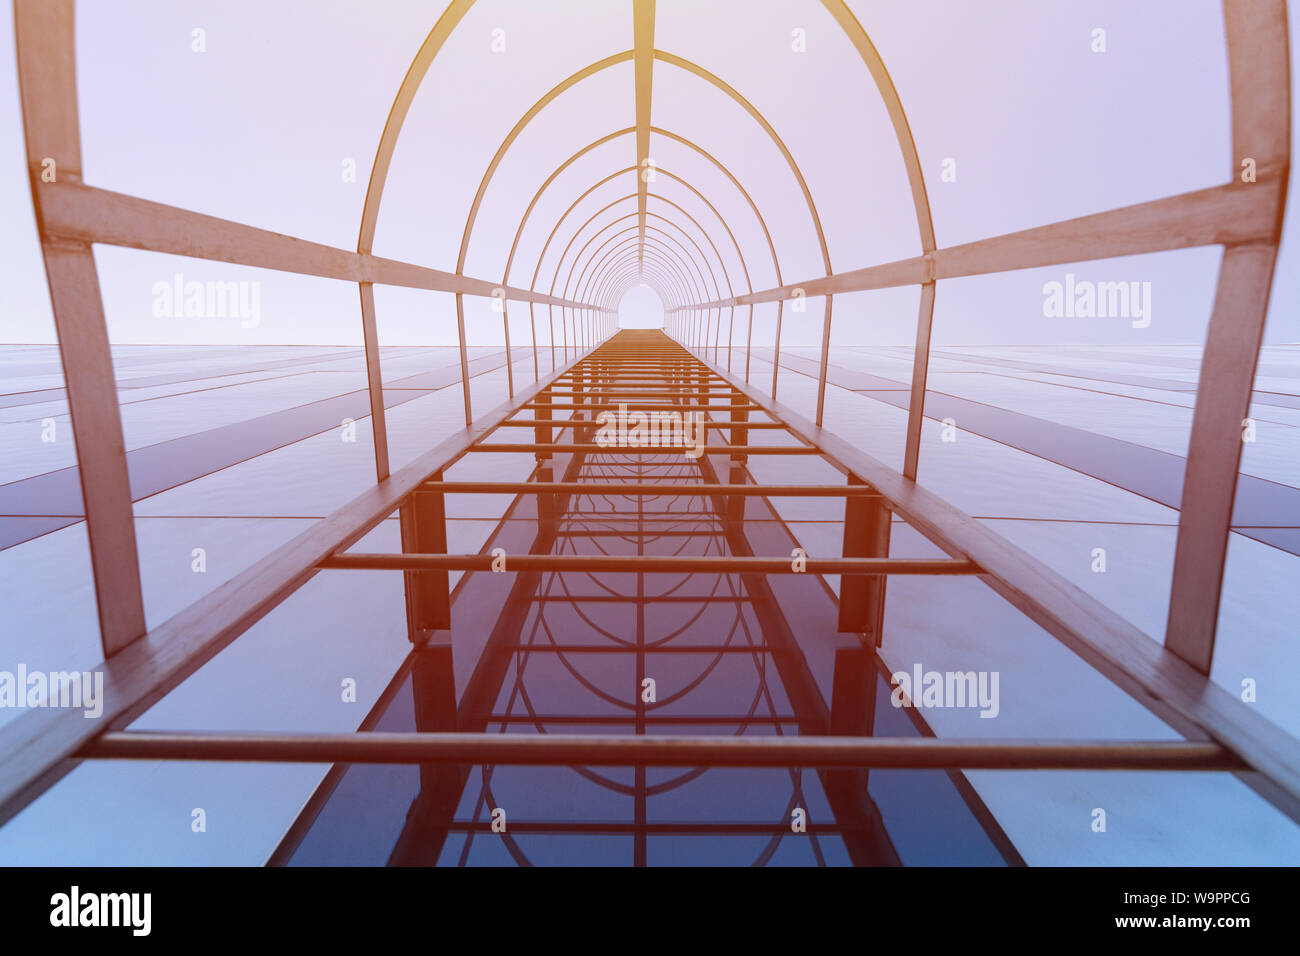 Stairway to Heaven concept. Fire escape staircase of modern shopping center. Emergency fire exit. Bottom view Stock Photo